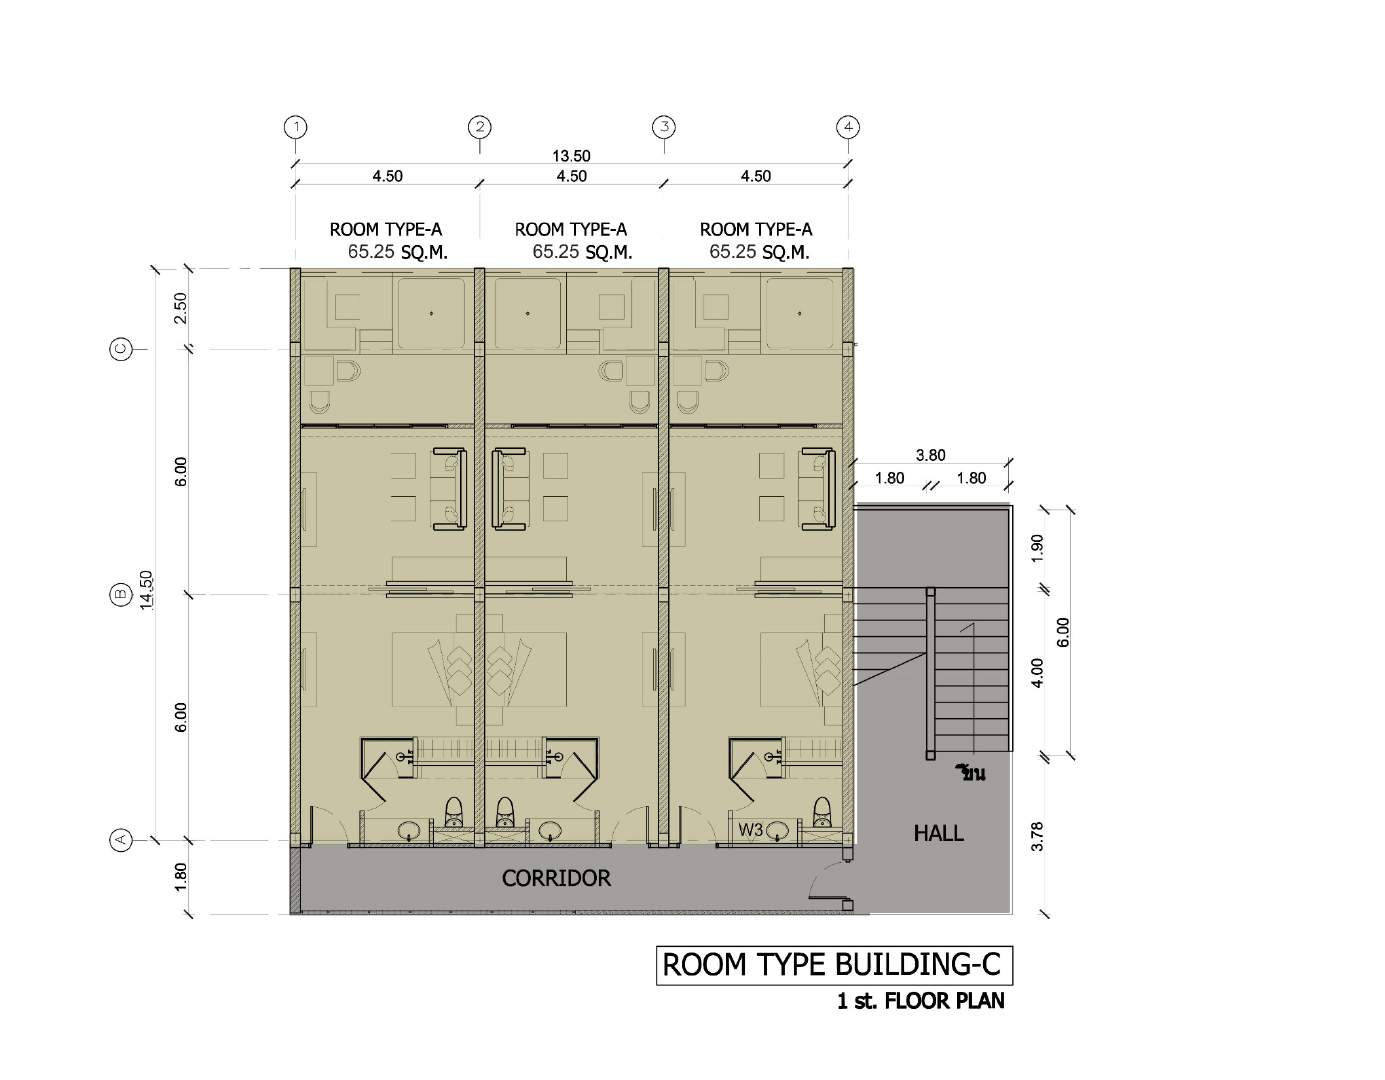 Phuket Holiday Services The Bay And The Beach Club Floor Plan Buidling C 1st Floor